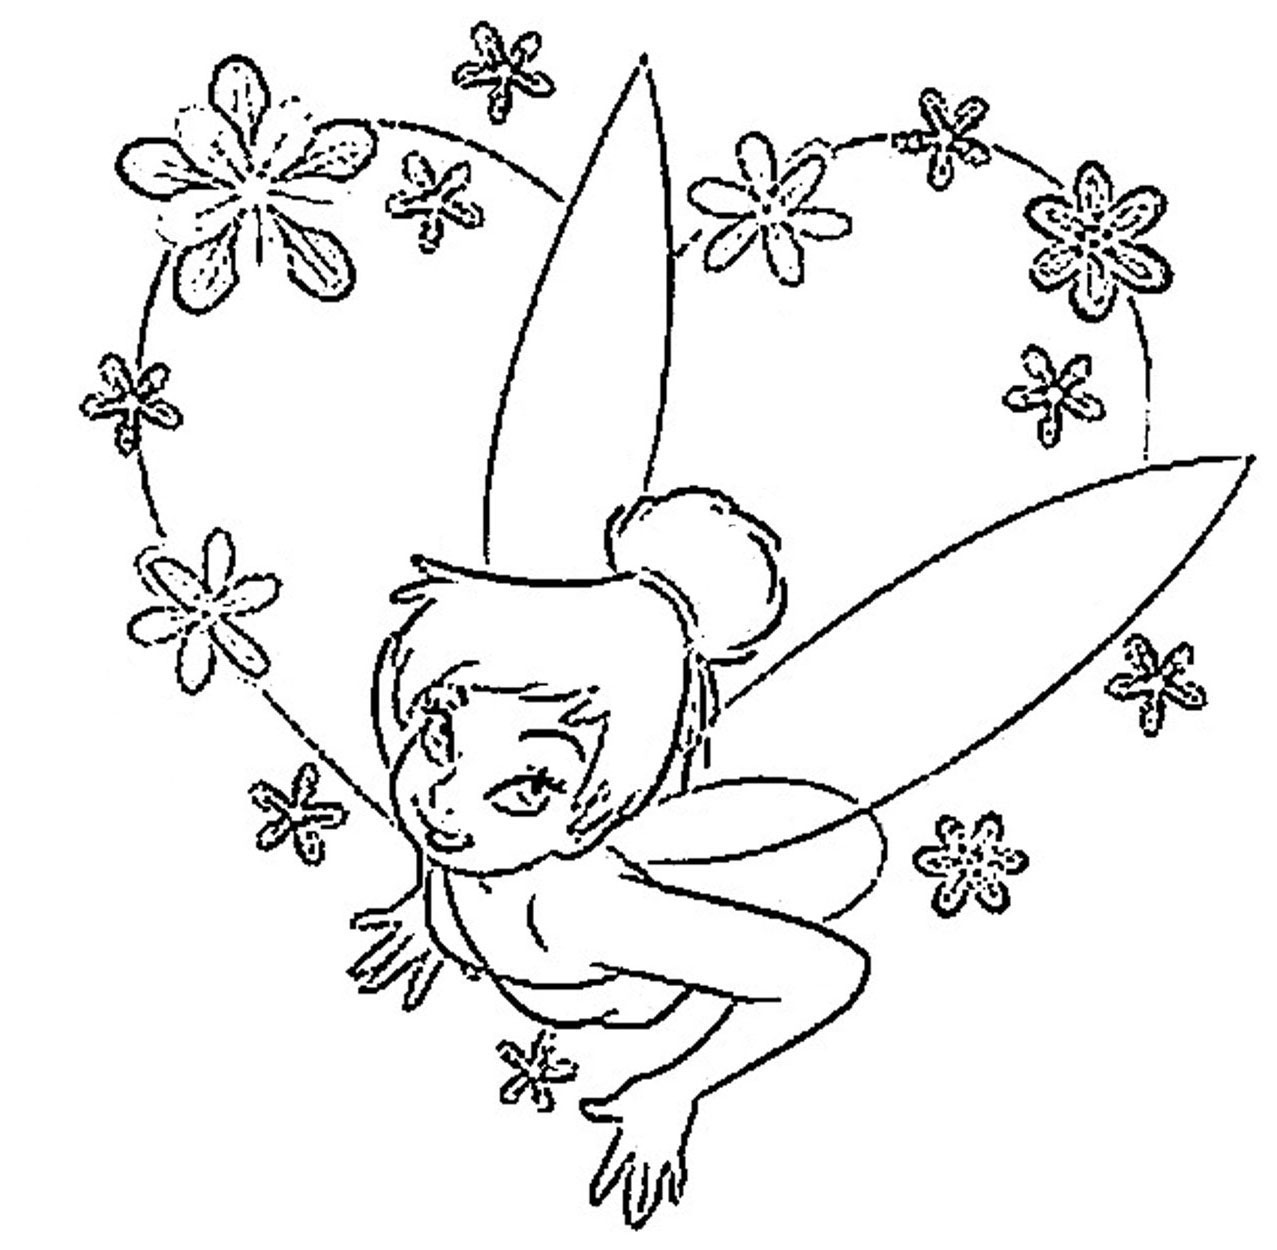 Free Printable Tinkerbell Coloring Pages For Kids Printables Coloring Pages